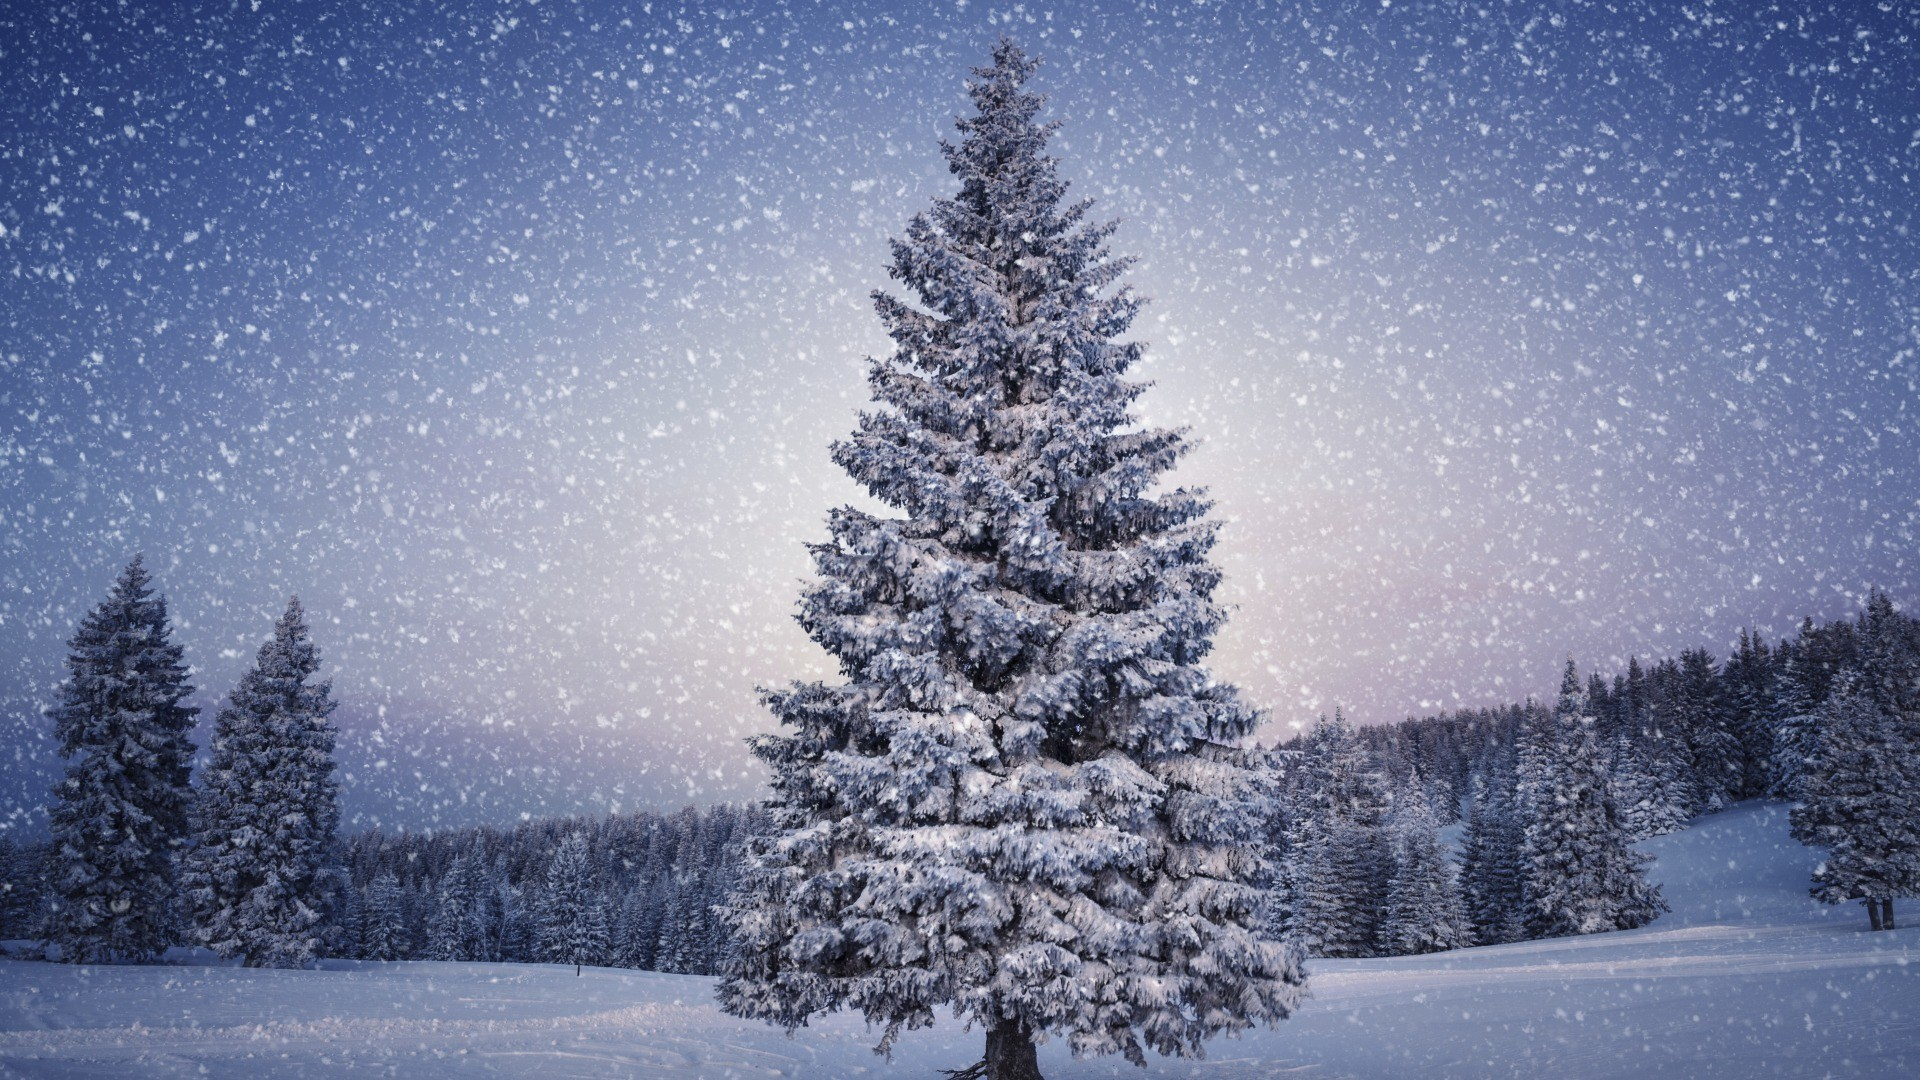 Christmas Trees Covered In Snow (44 Wallpapers)